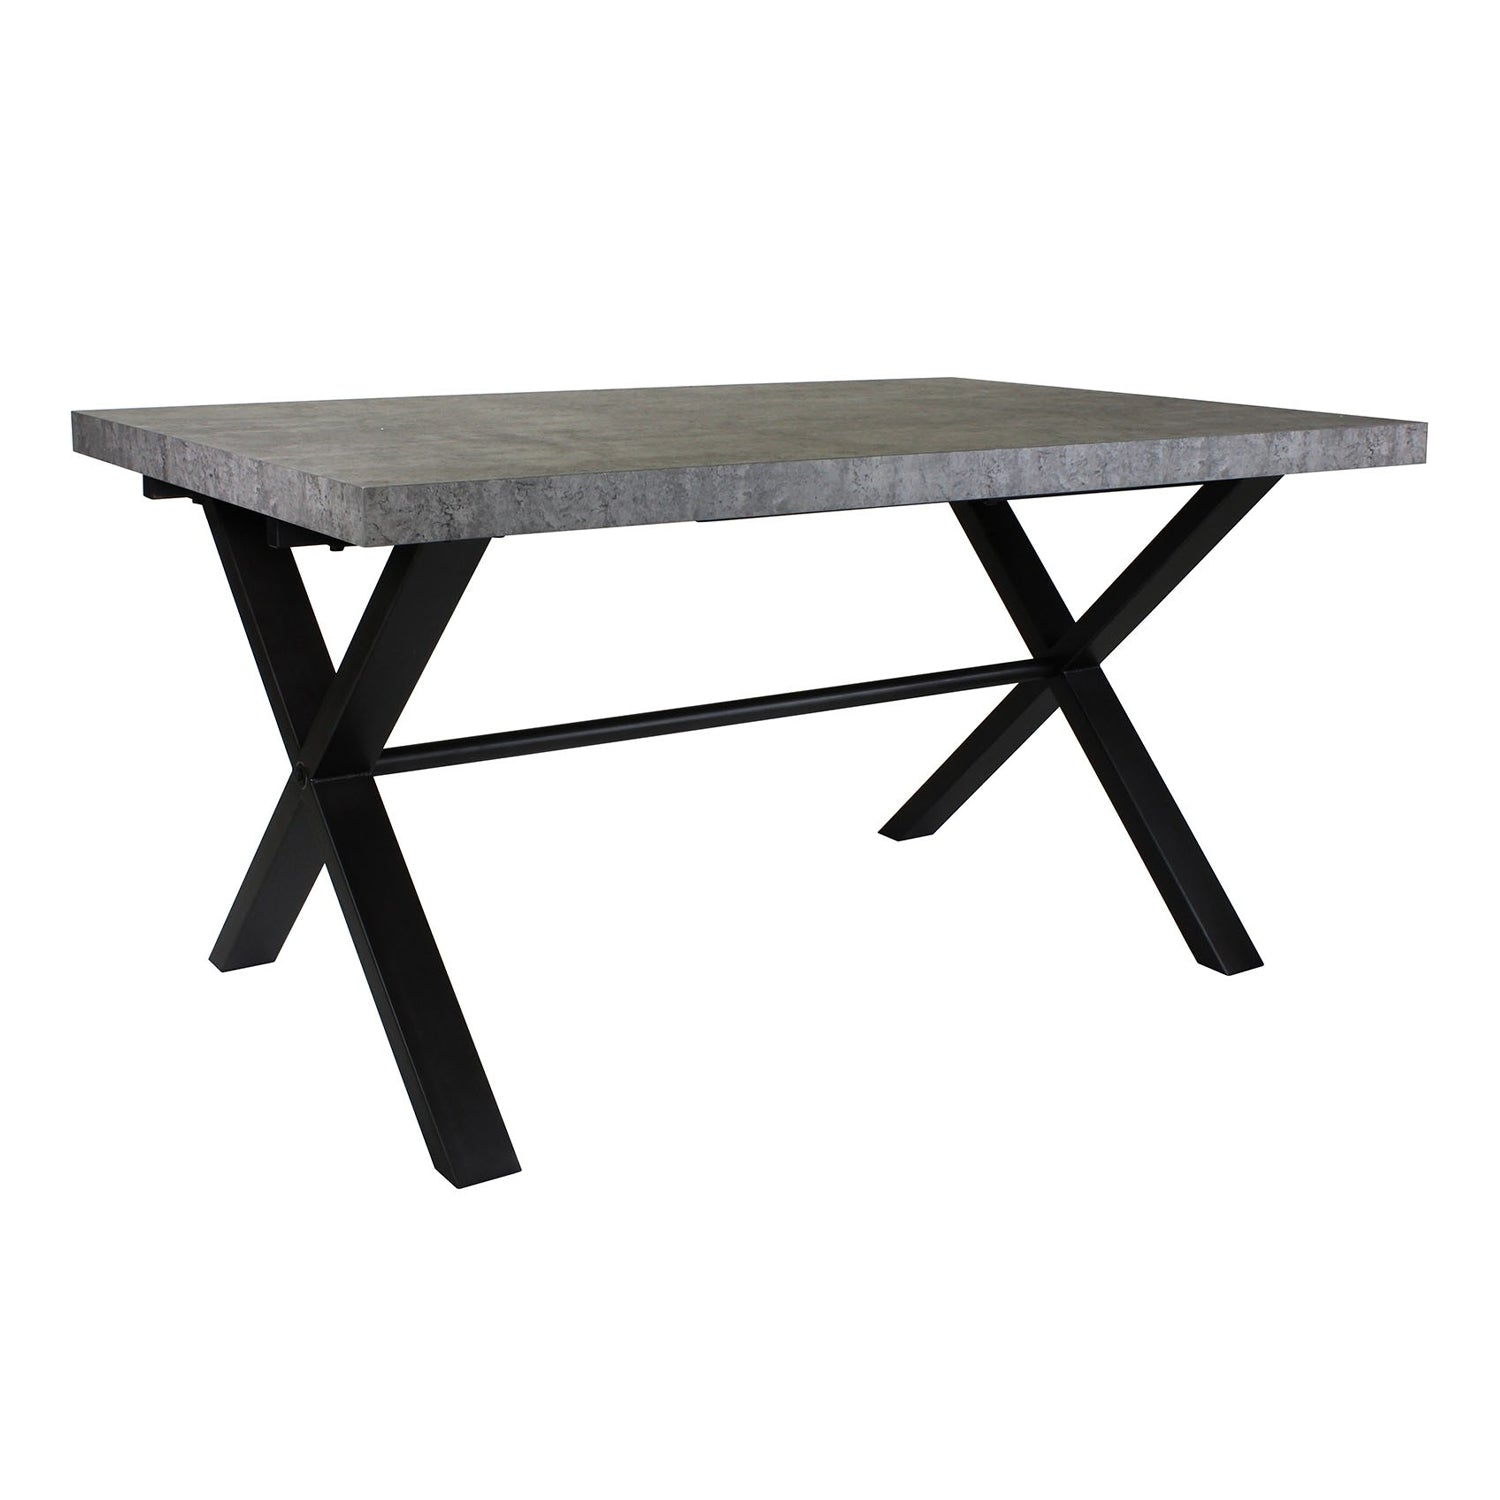 Elsworthy Stone Effect - Small Dining Table